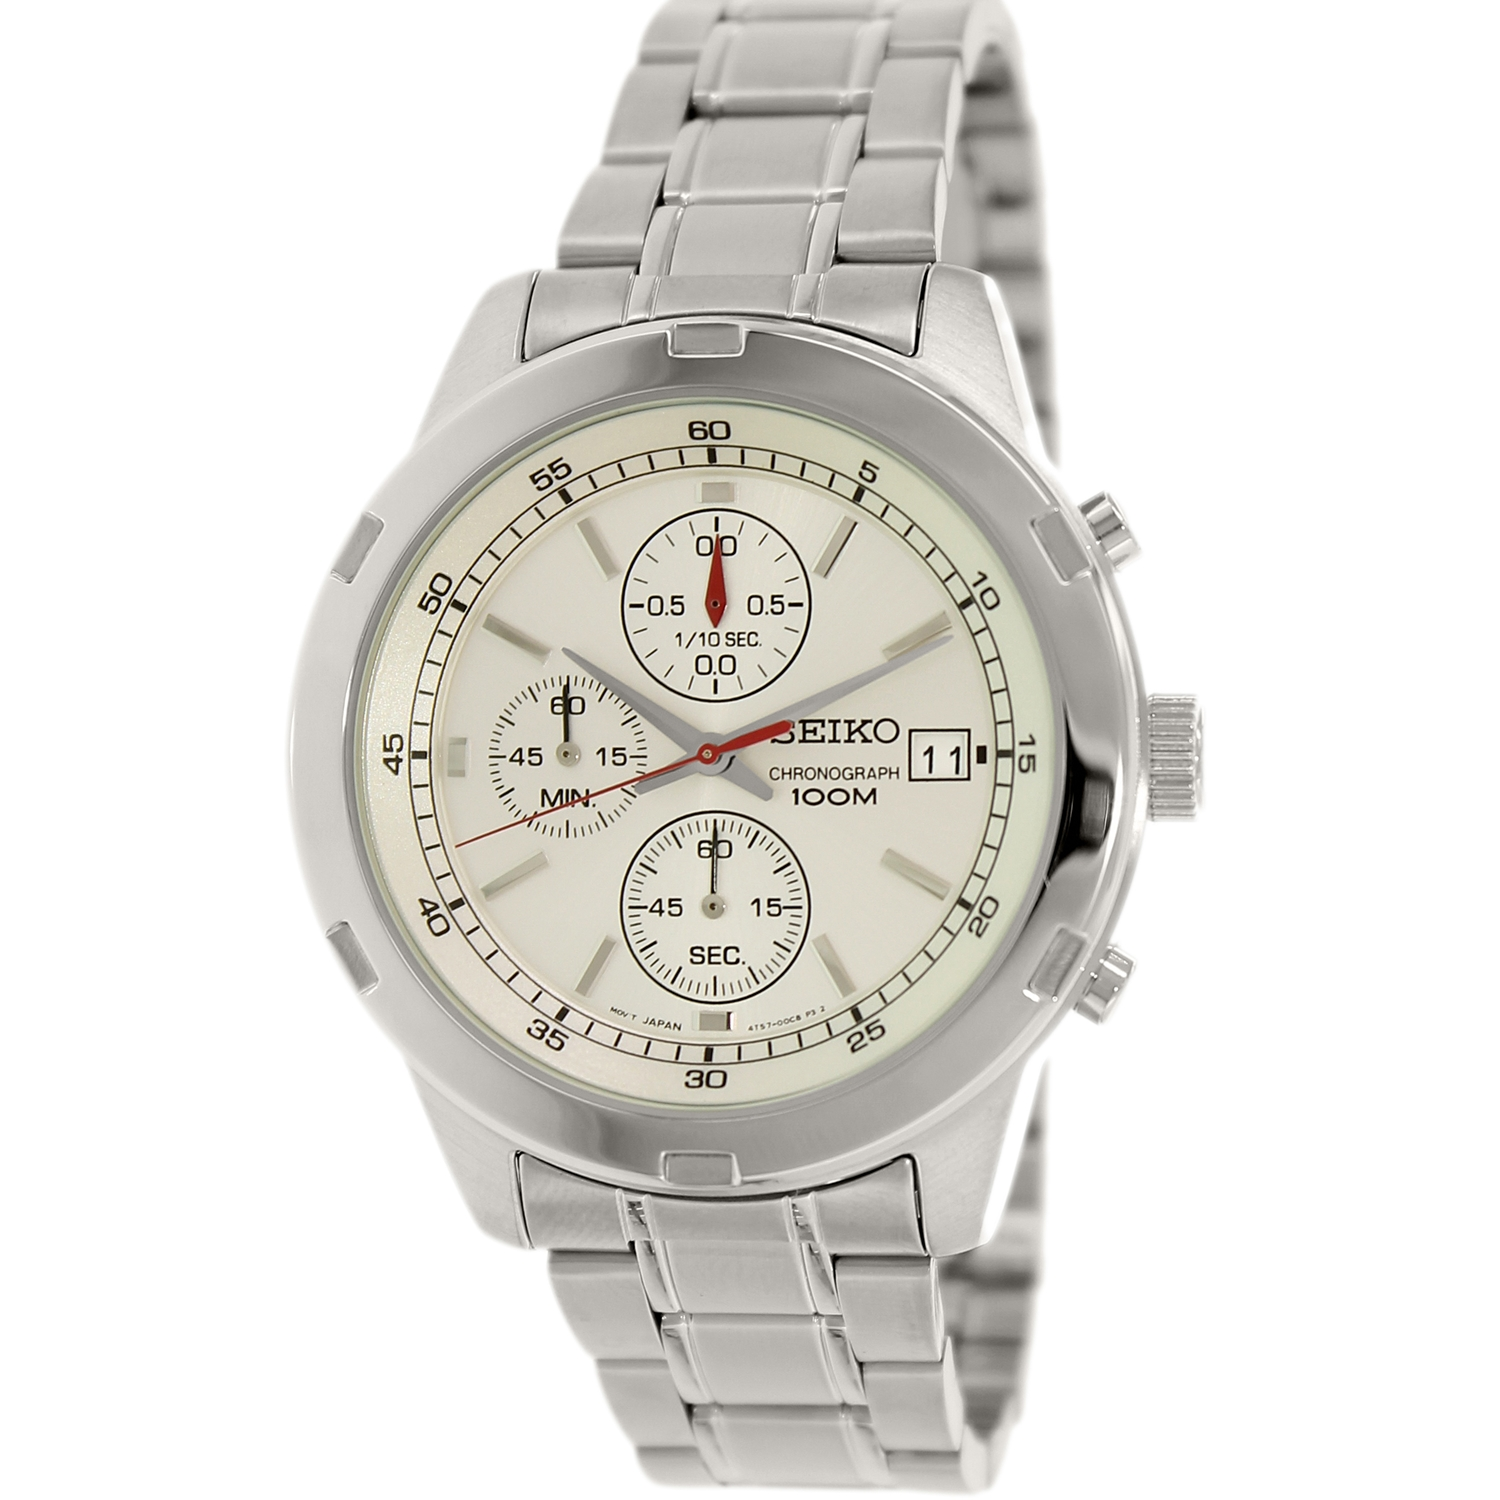 Seiko Men's SKS417 Silver Stainless-Steel Quartz Watch